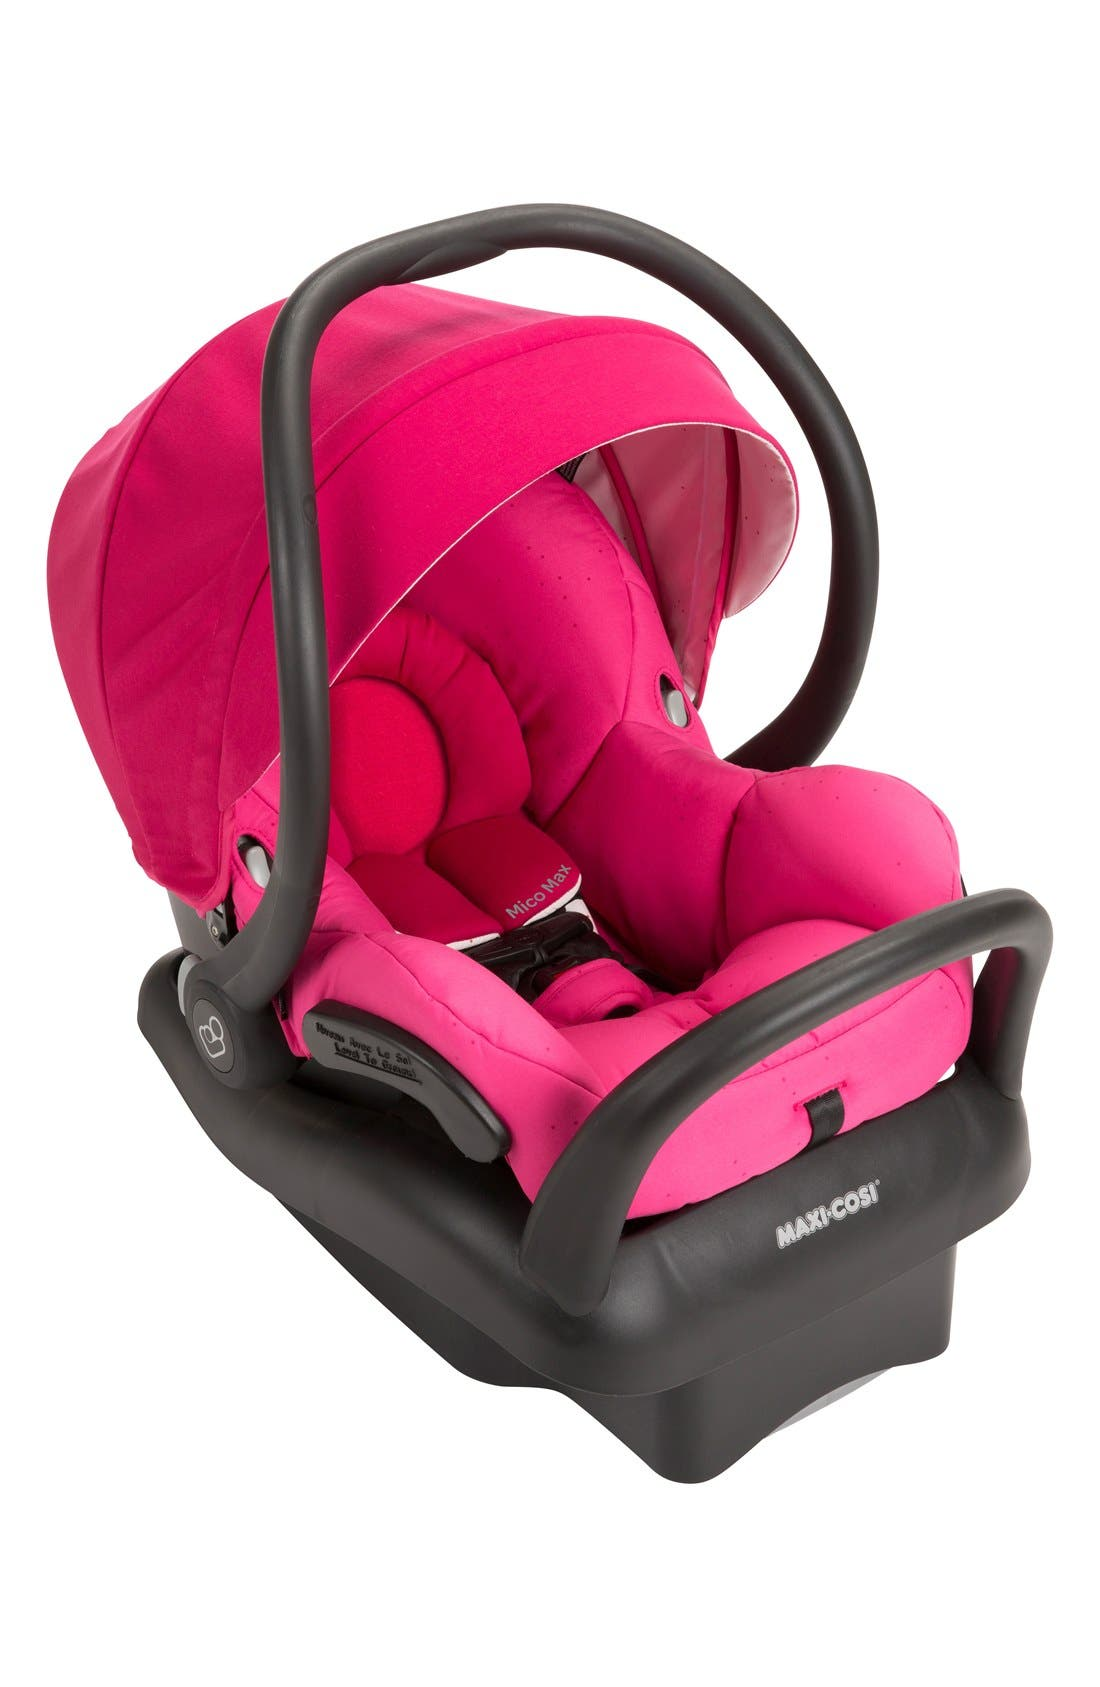 Mico Max 30 Infant Car Seat,                         Main,                         color, Pink Berry